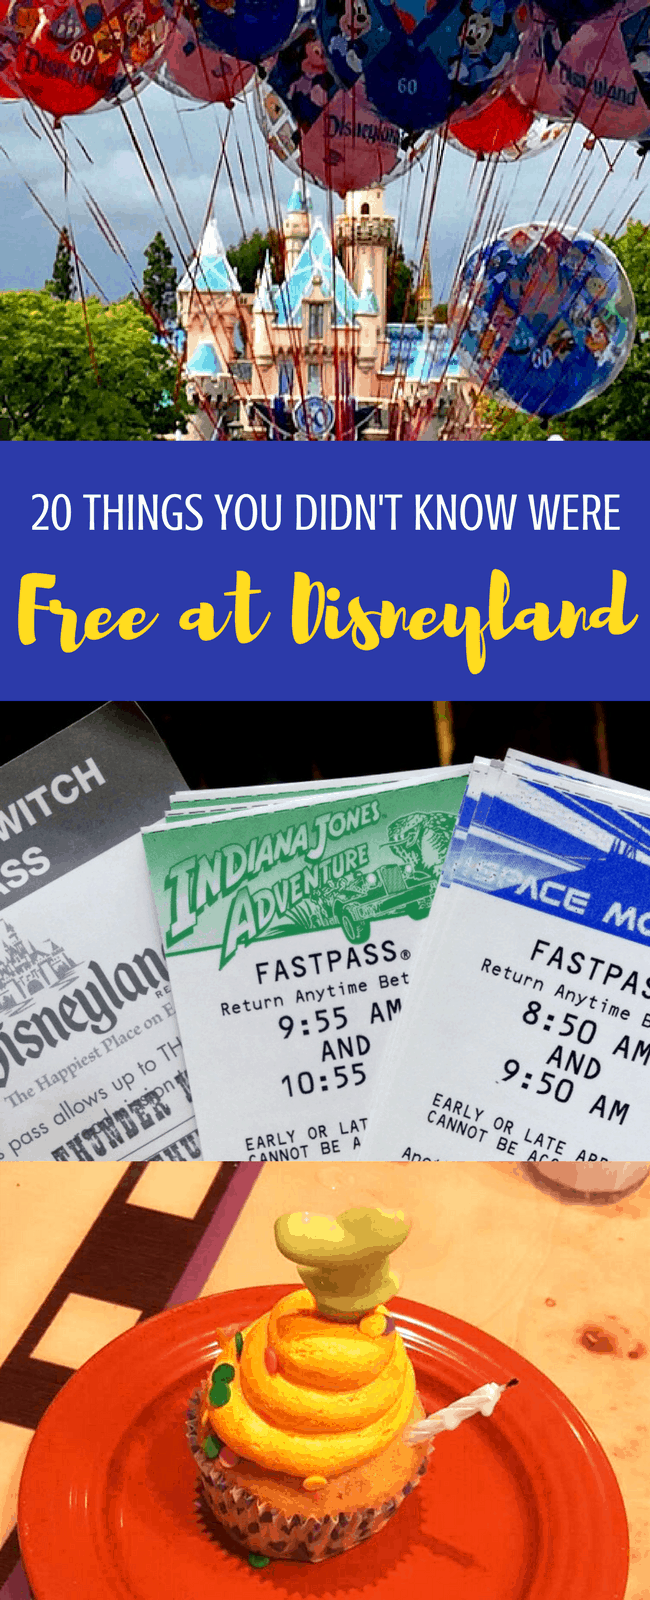 20 things that are free at Disneyland: you don't want to miss these tips before your next Disney vacation! Freebies at Disneyland: stuff in the parks, resorts, and Downtown Disney. #Disneyland #DisneyTips #FreeDisney #Free #TravelTips